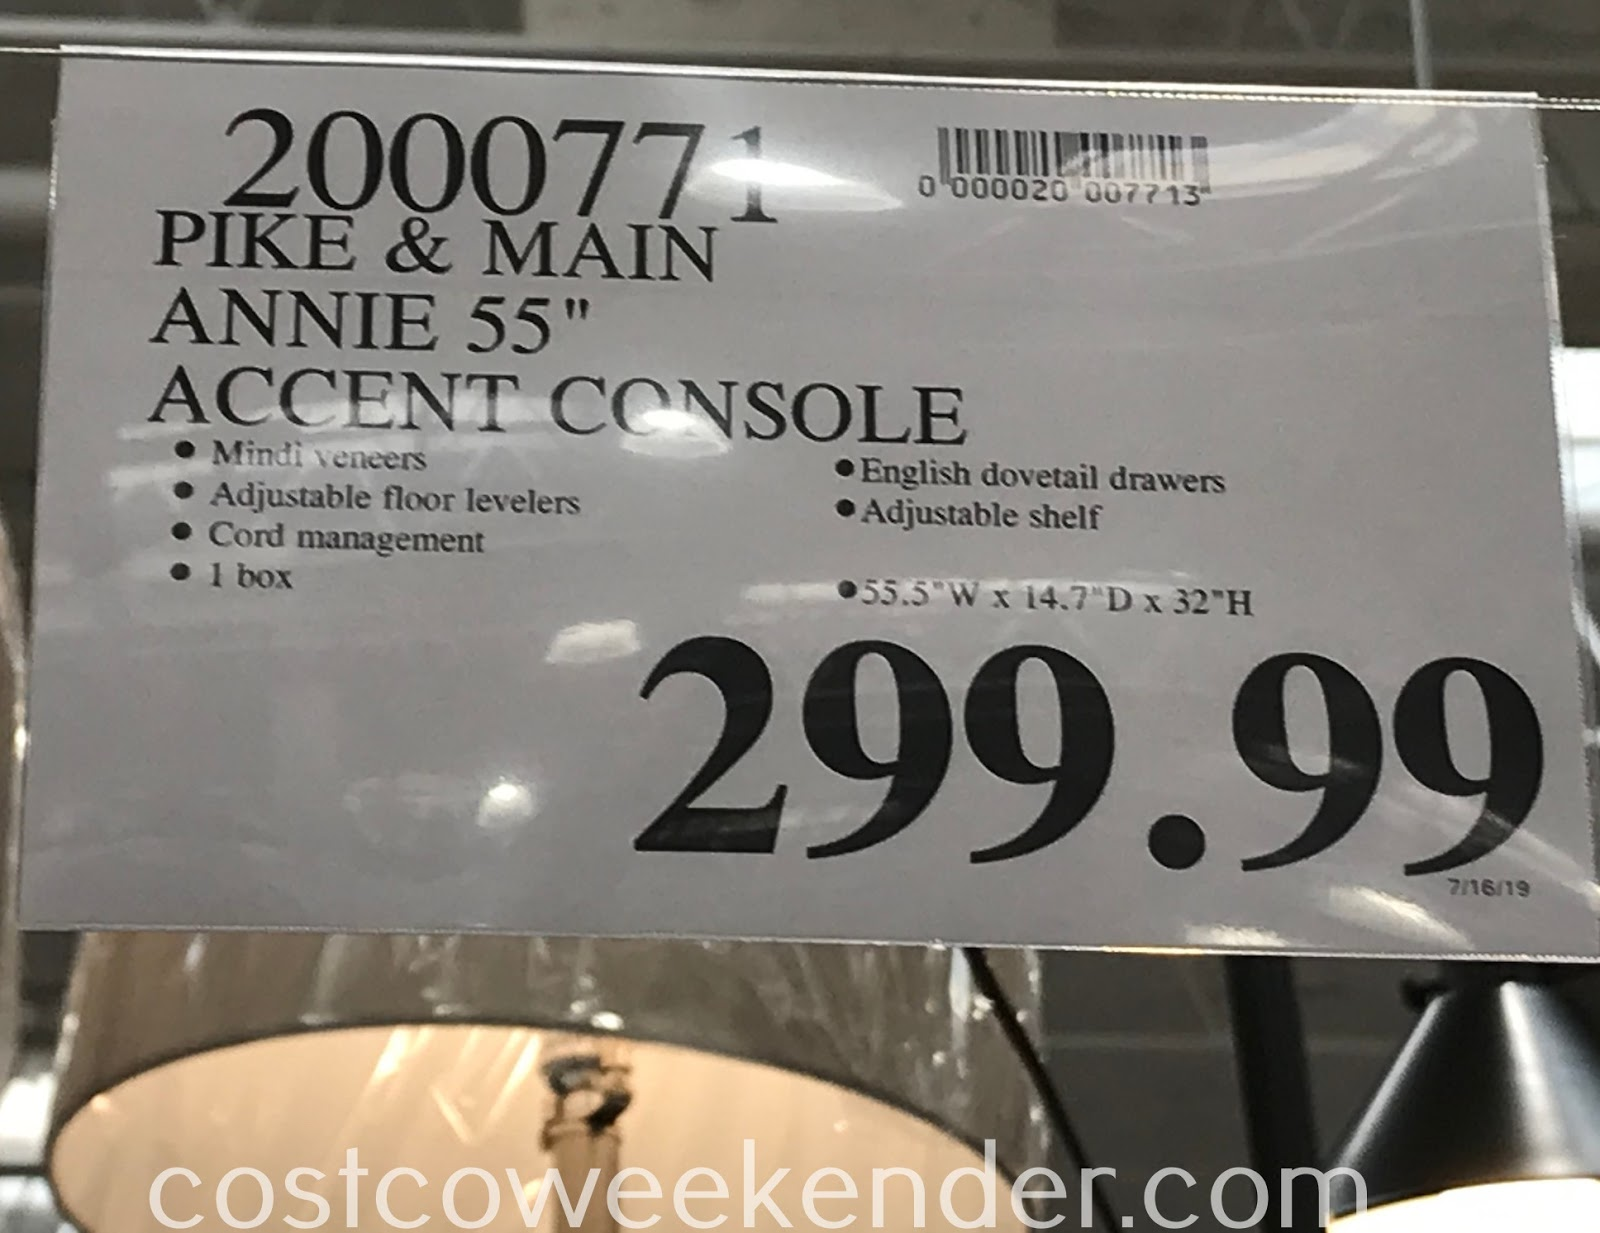 Deal for the Pike and Main Annie Accent Console at Costco